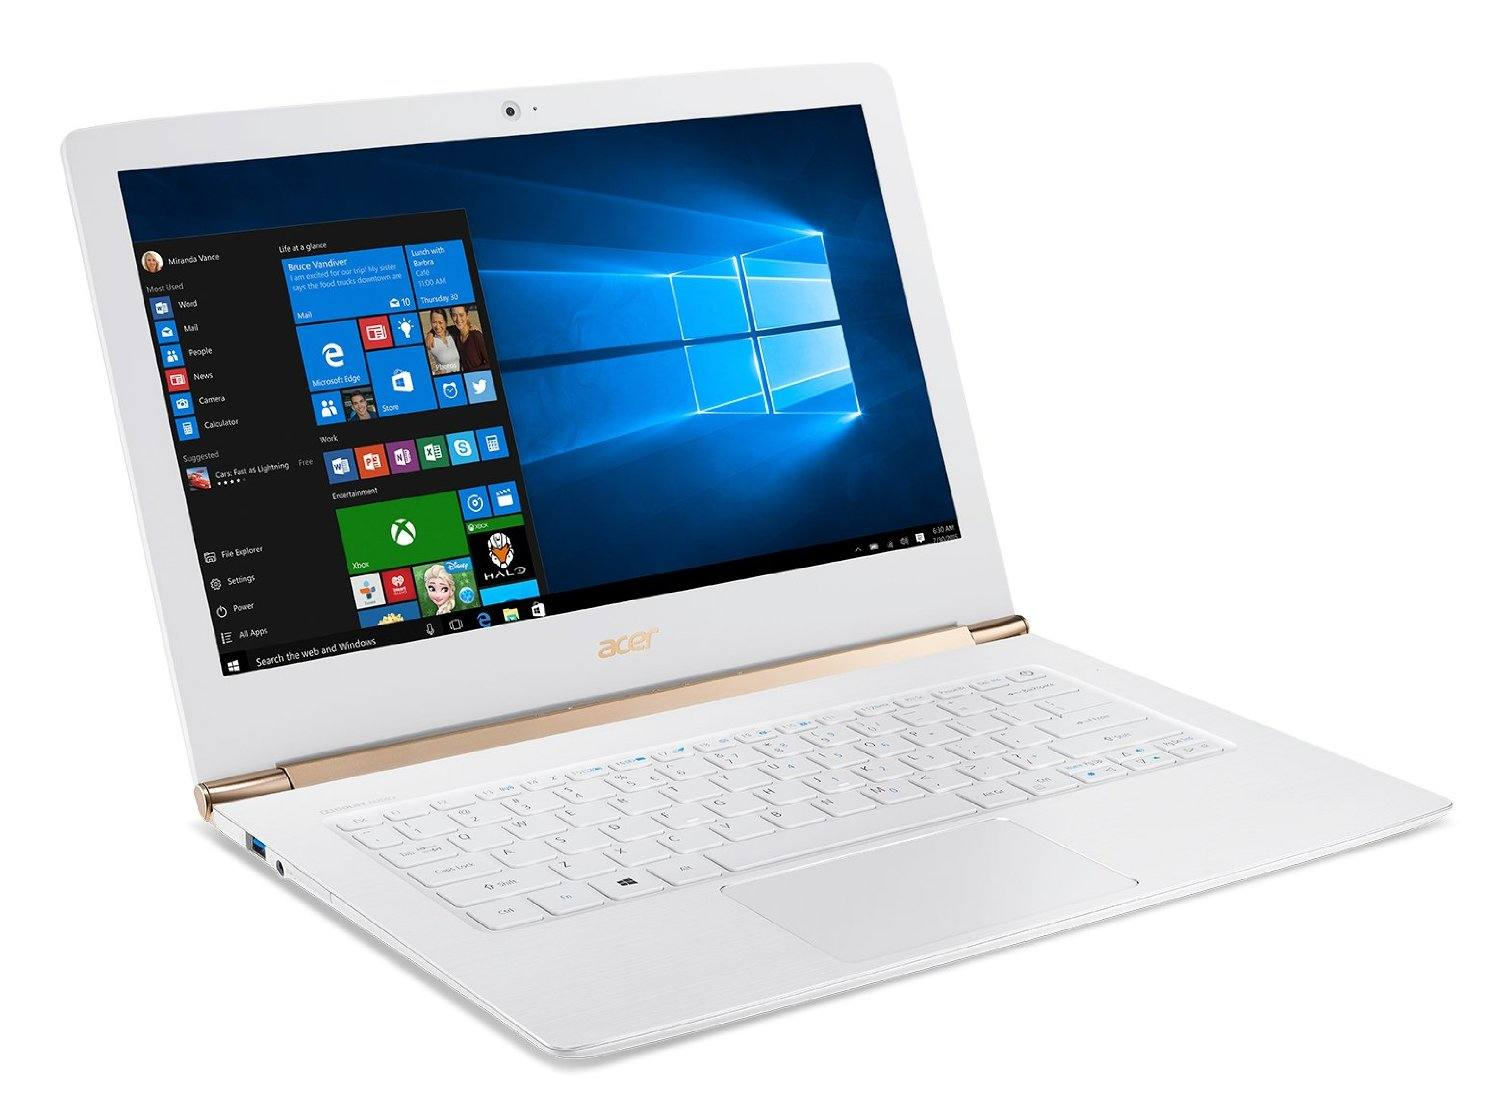 What is the best laptop to buy under $1,000?